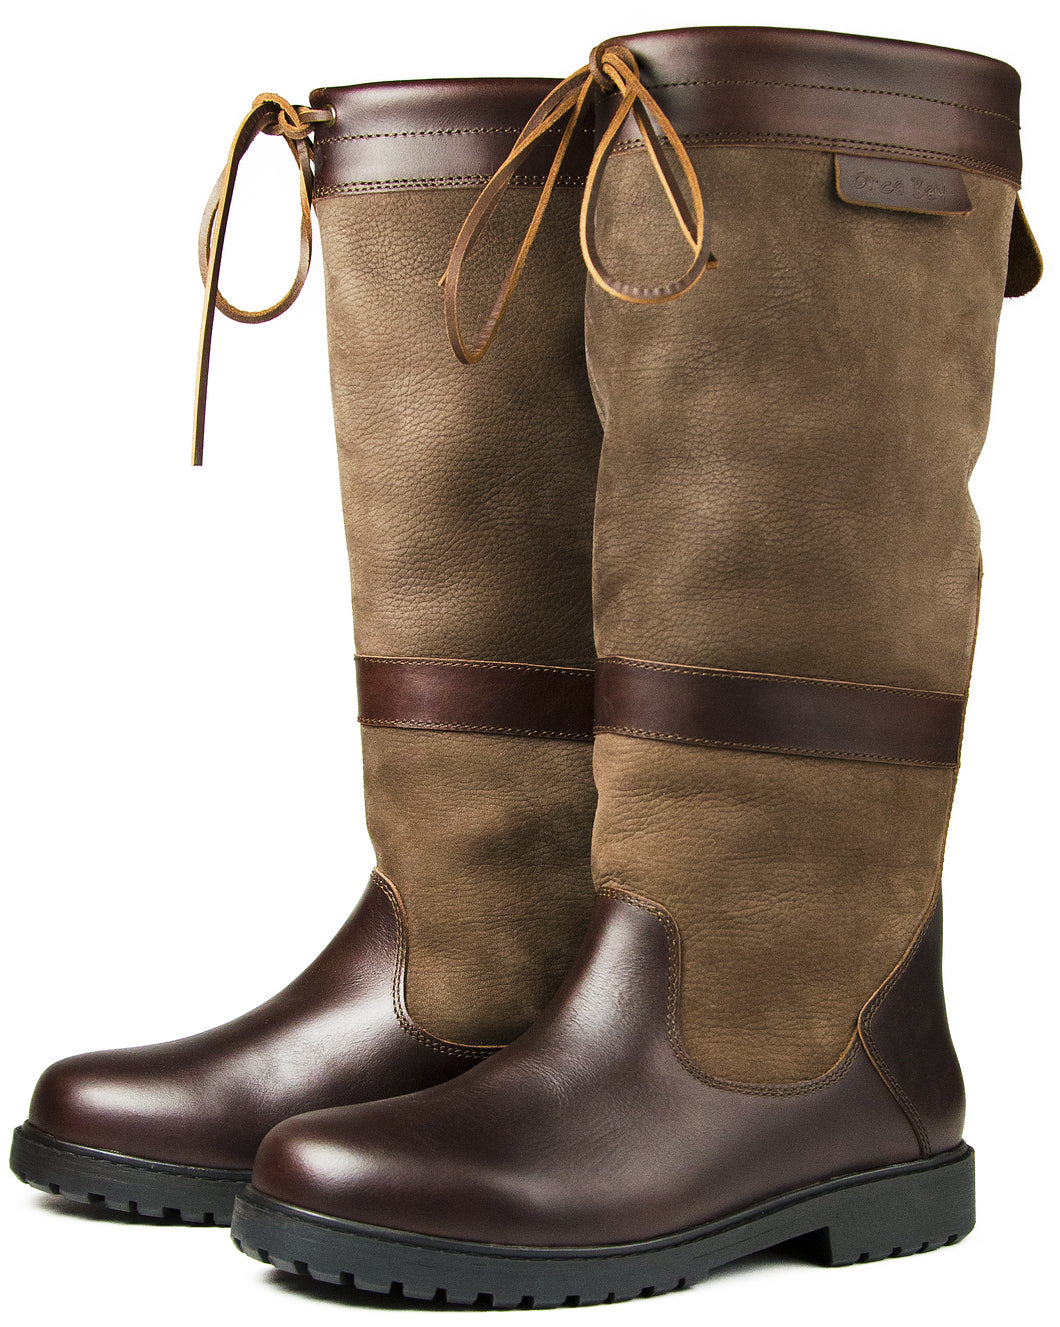 Orca Bay Mull Country Boots